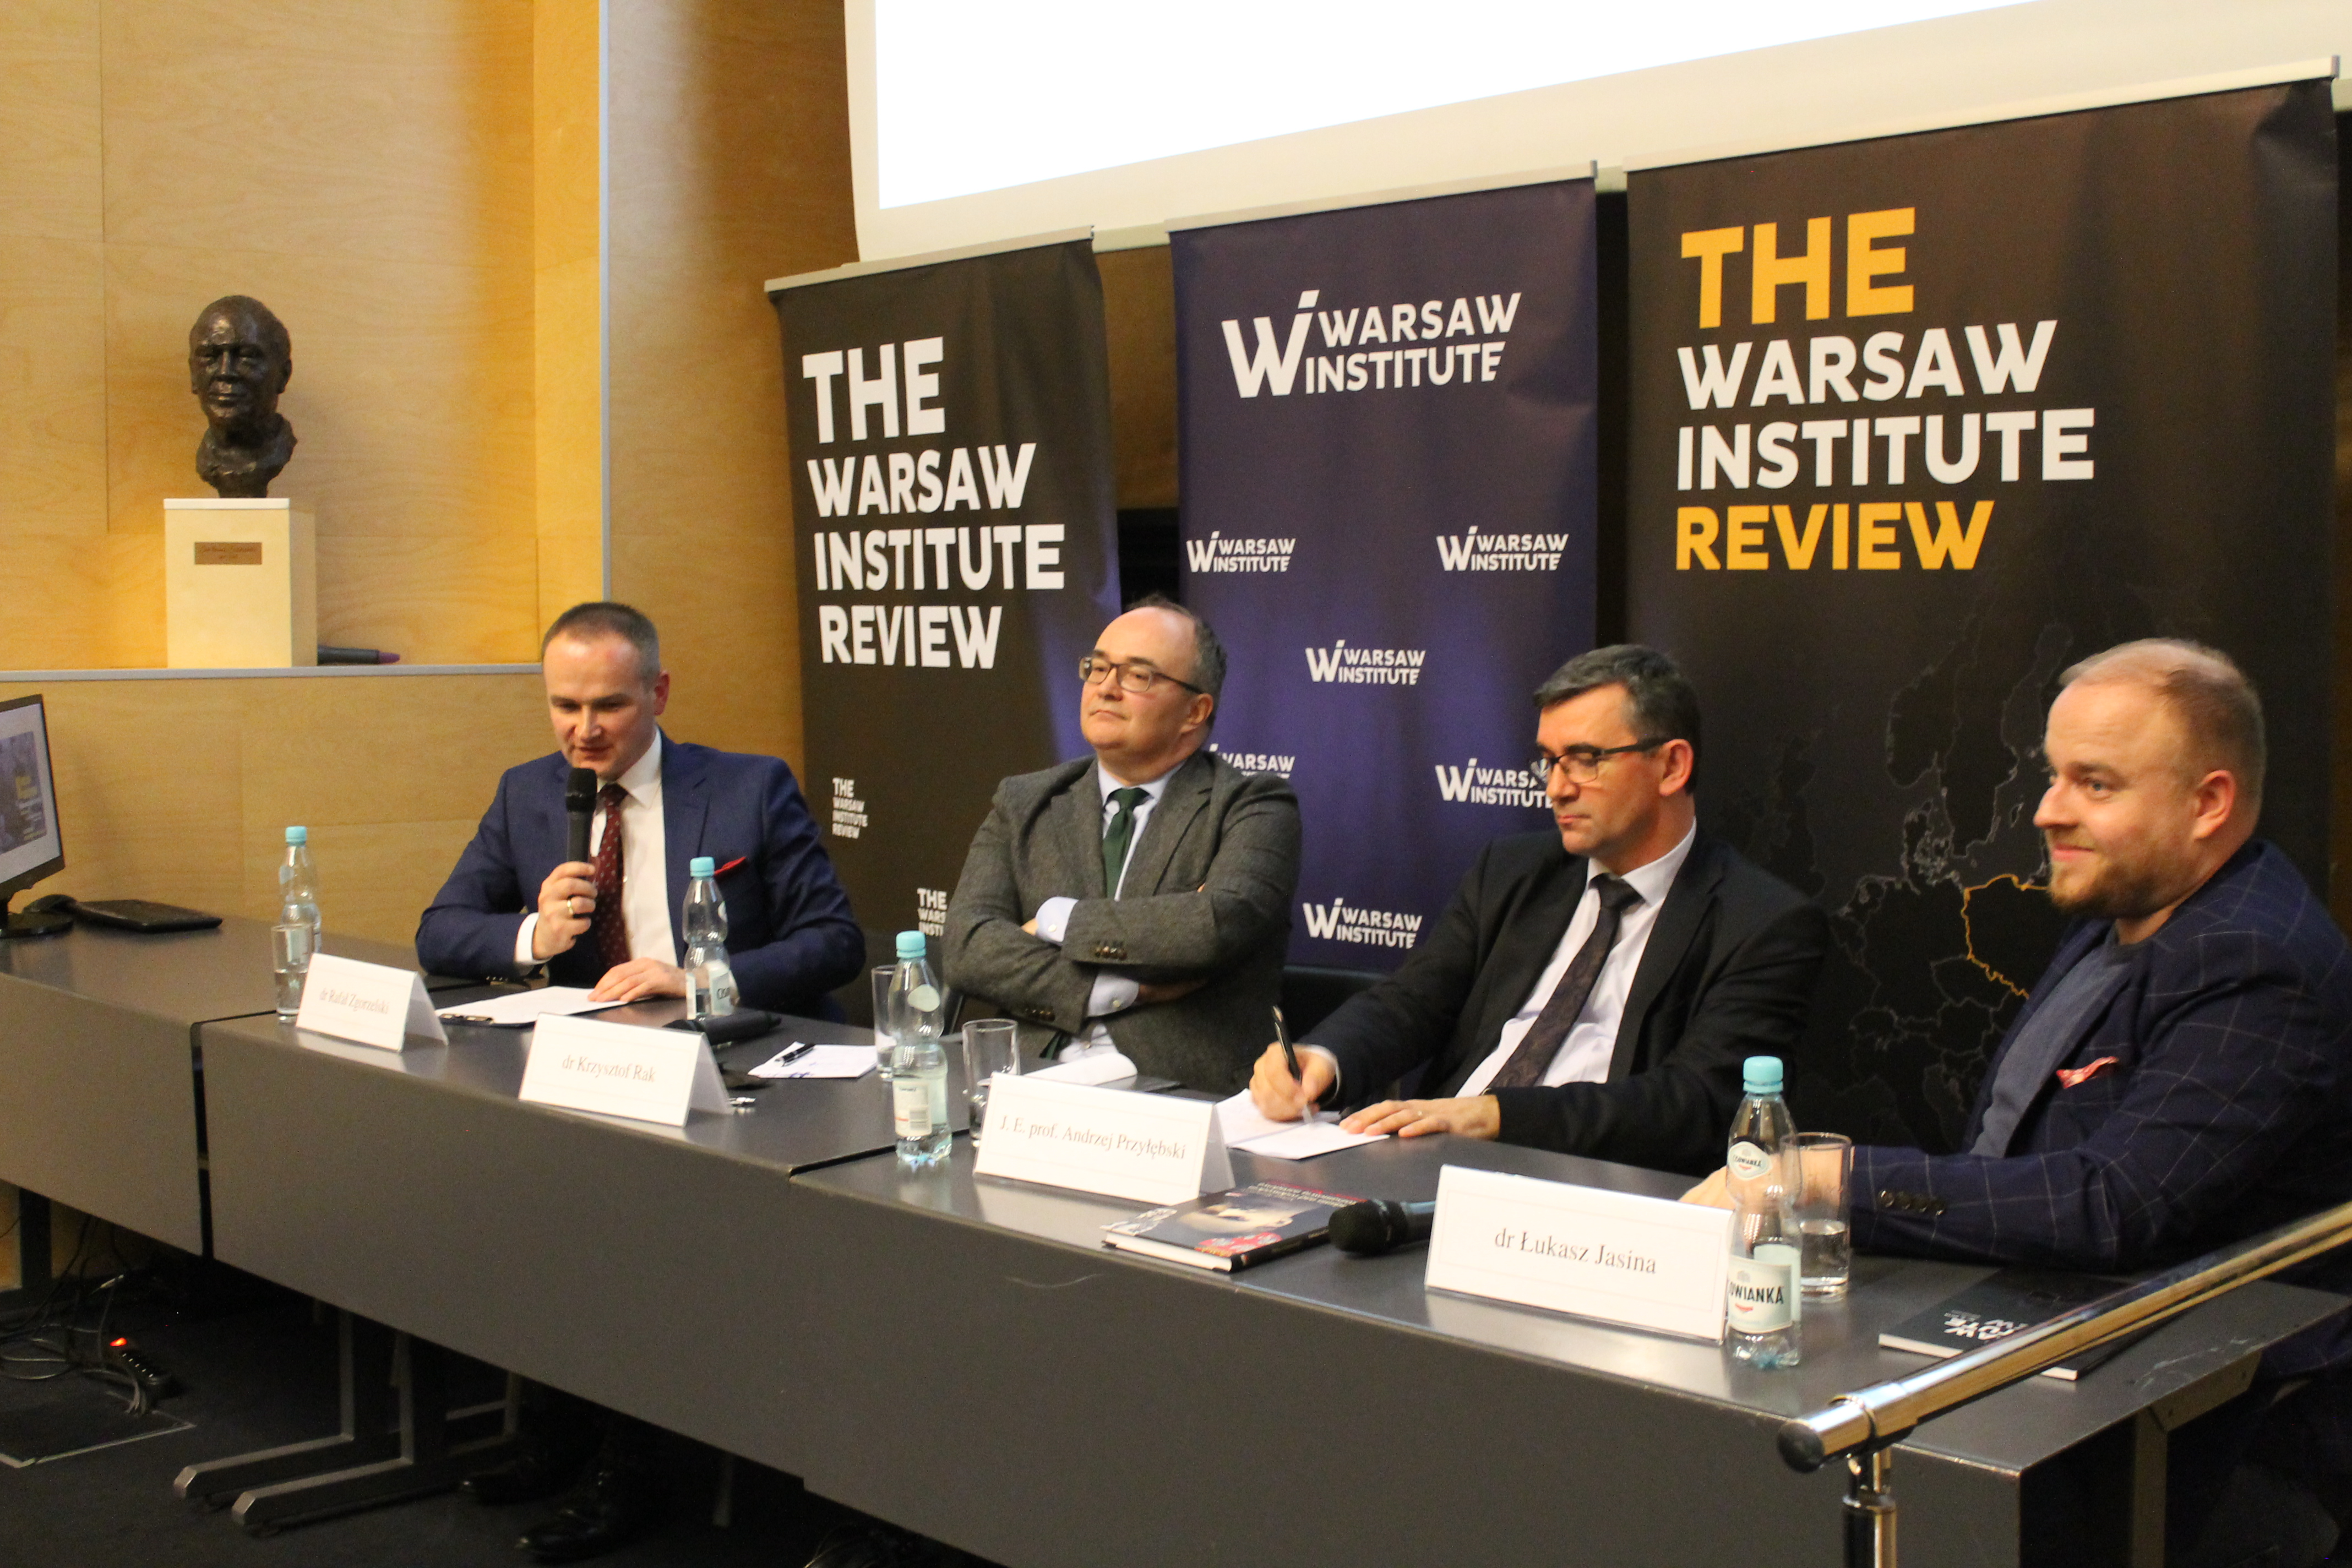 'World War II: Distorted Narratives of History' Debate with H.E. prof. Andrzej Przyłębski